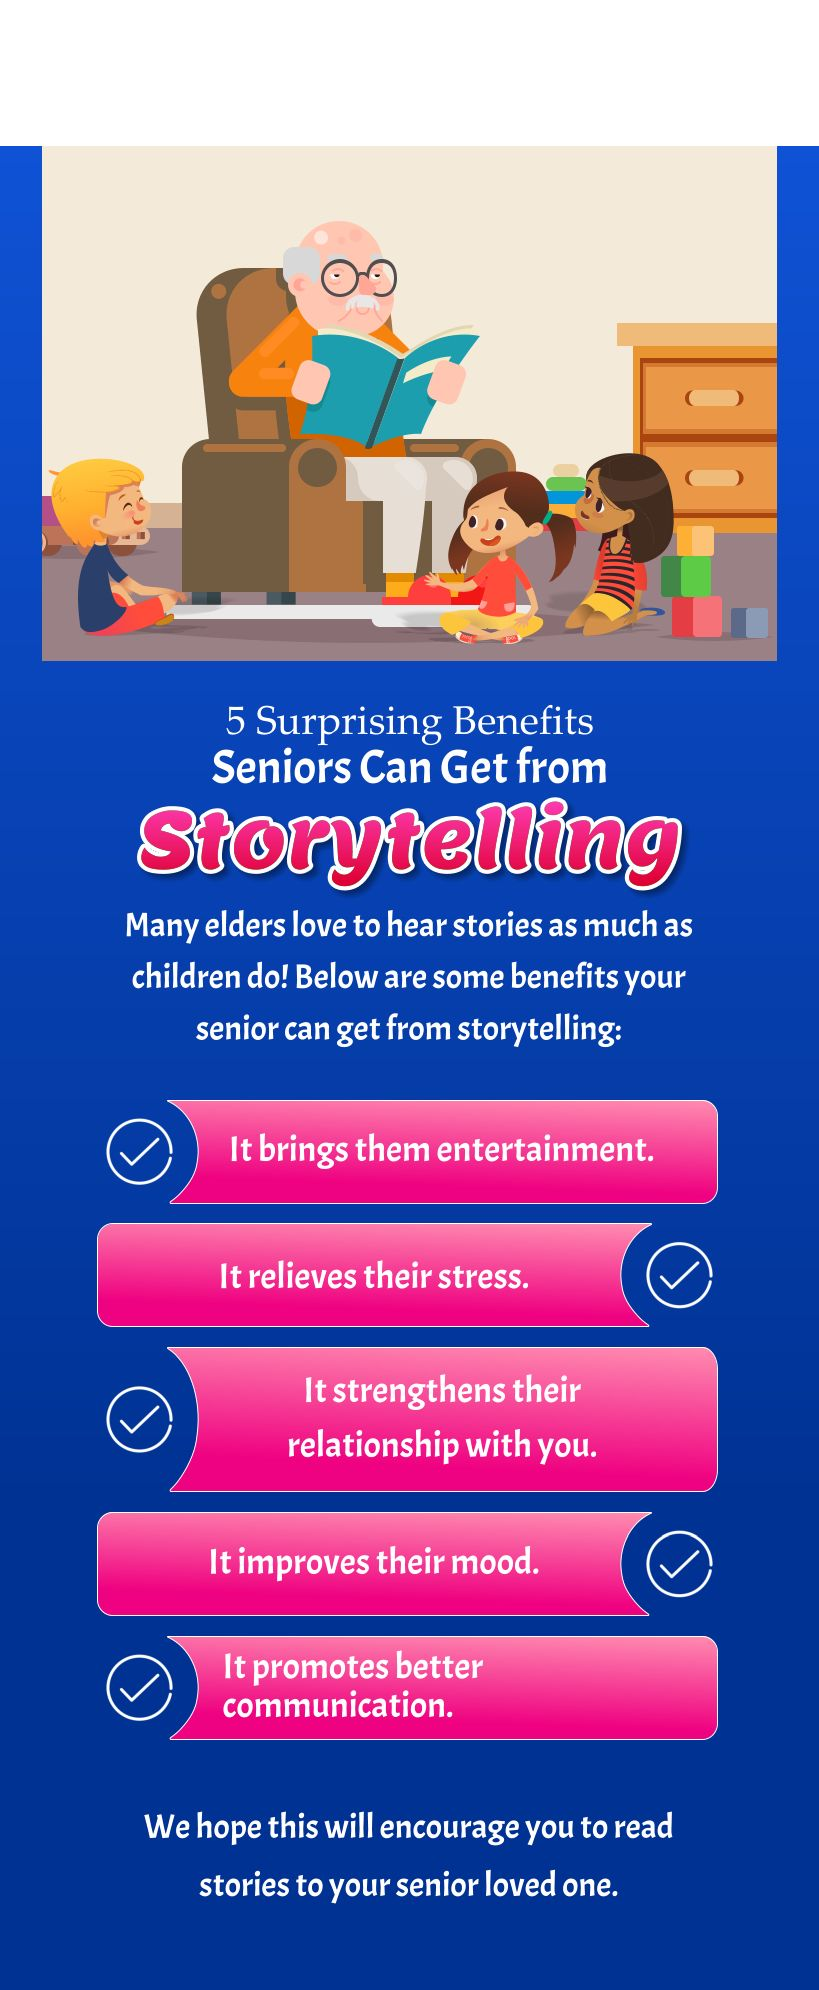 5 Surprising Benefits Seniors Can Get from Storytelling